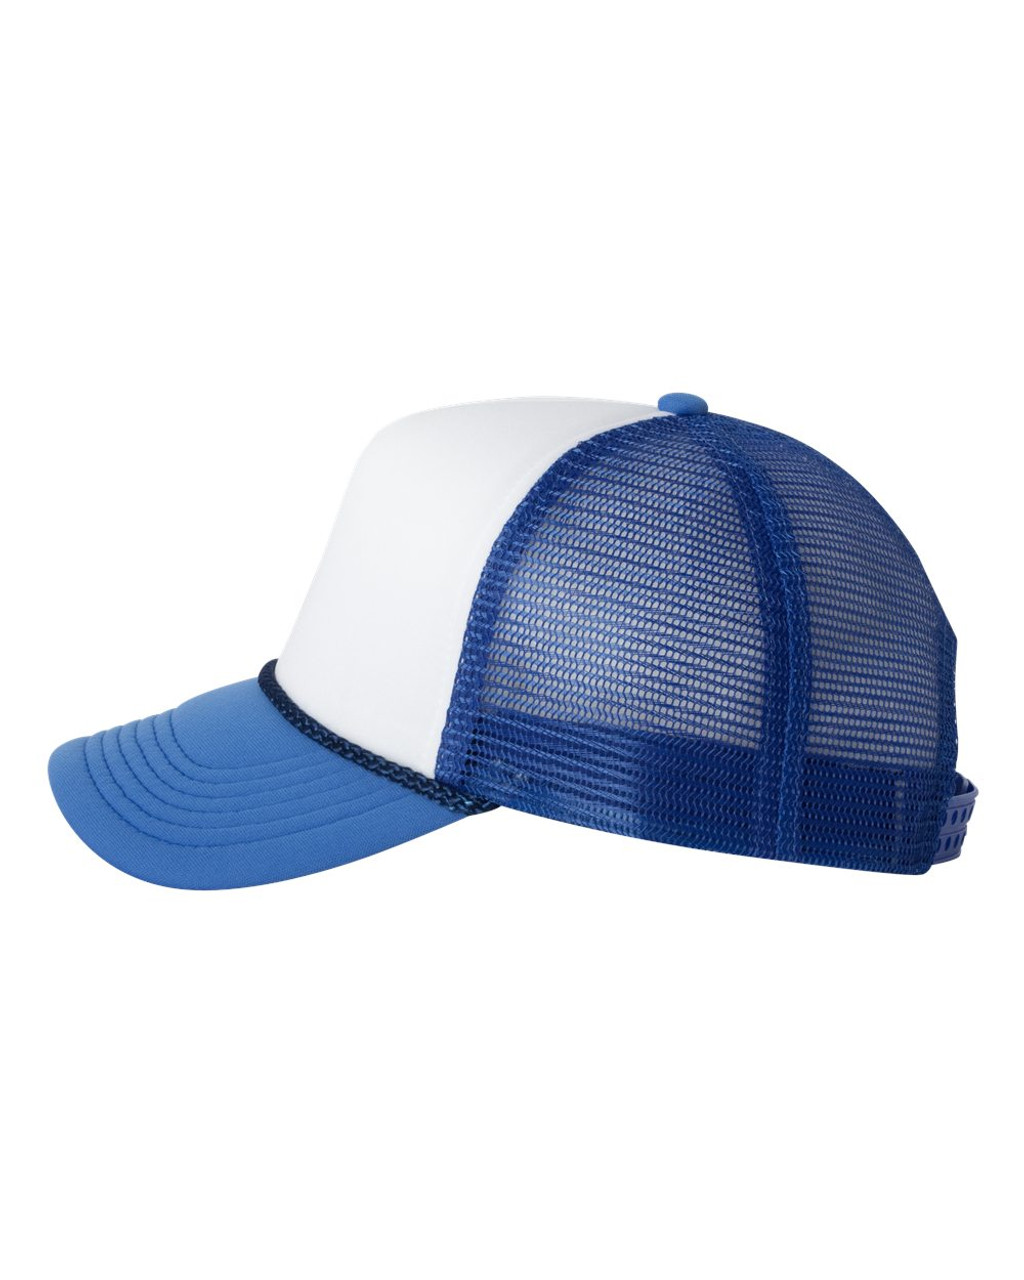 VC700 Valucap Foam Trucker Hat | T-shirt.ca